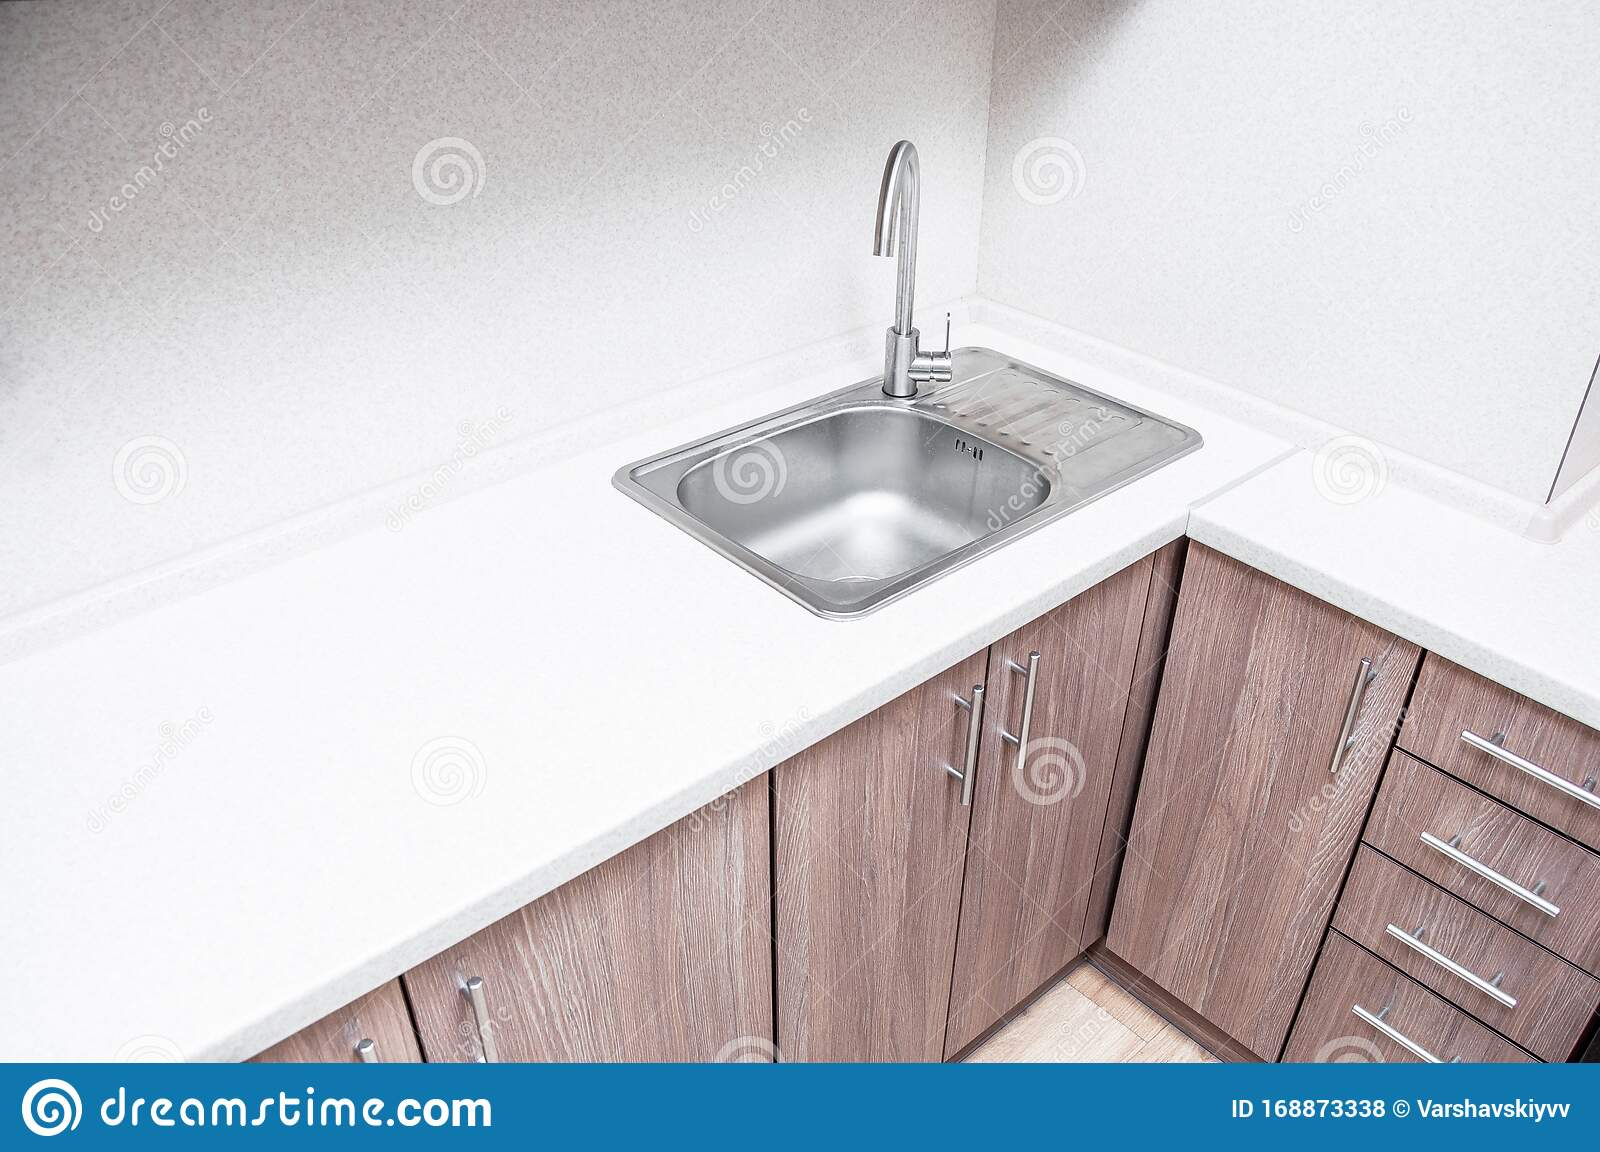 A Beautiful And Minimalistic Workplace For A Housewife Aluminum Sink With Tap Fitting In The Corner Of The Kitchen Worktop Stock Photo Image Of Mtterrier Order 168873338